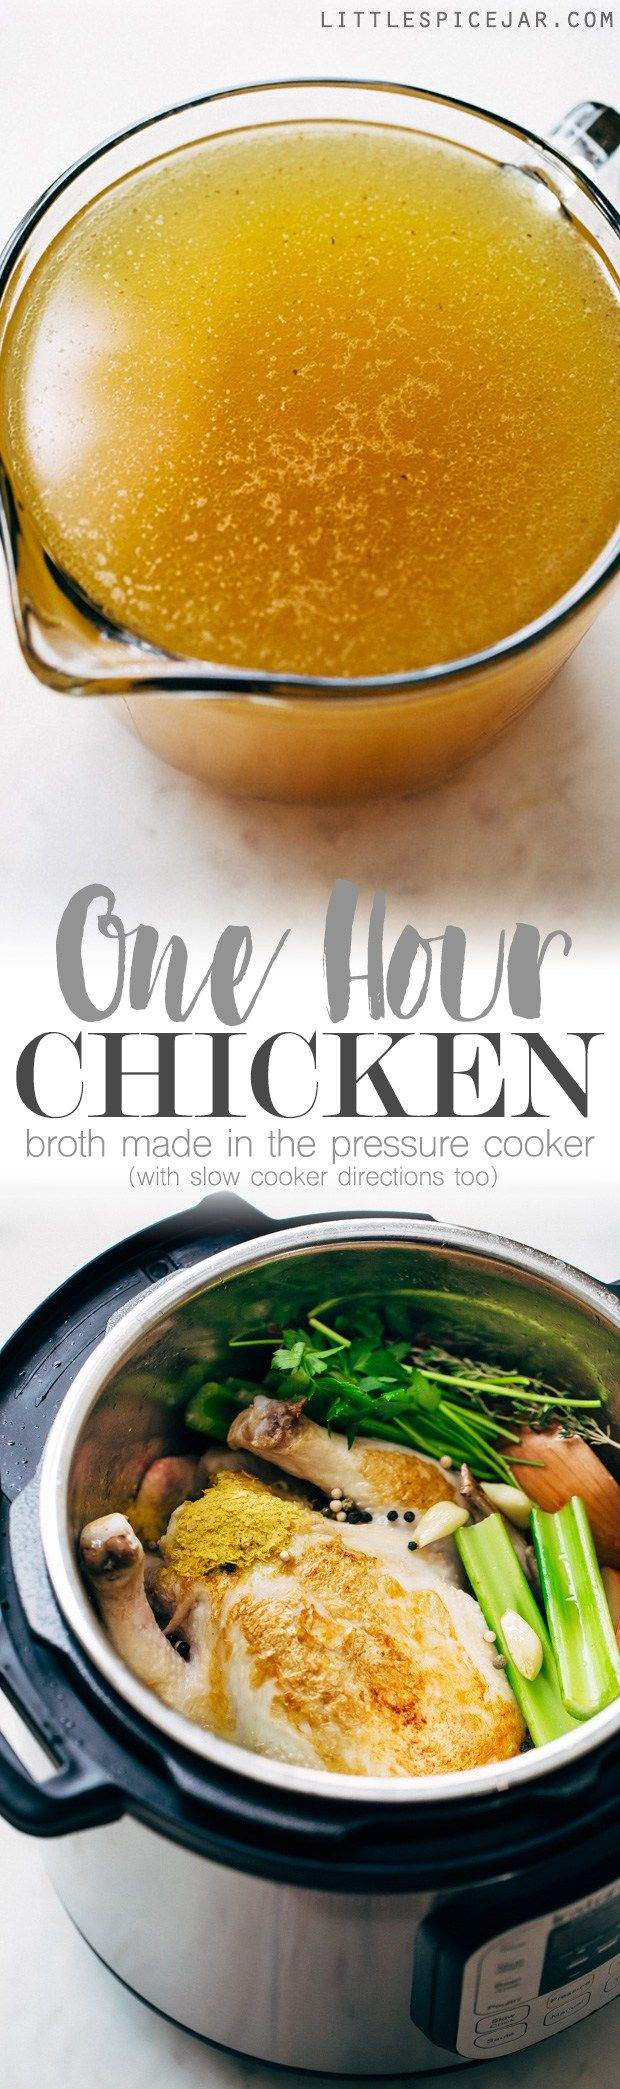 One Hour Pressure Cooker Chicken Broth - Learn how to make chicken broth in a pressure cooker in 1 hour! This is a simple recipe that you can easily prepare and use in all your favorite dishes! #chickenbroth #bonebroth #pressurecooker #instantpot #instantpotchickenbroth | Littlespicejar.com